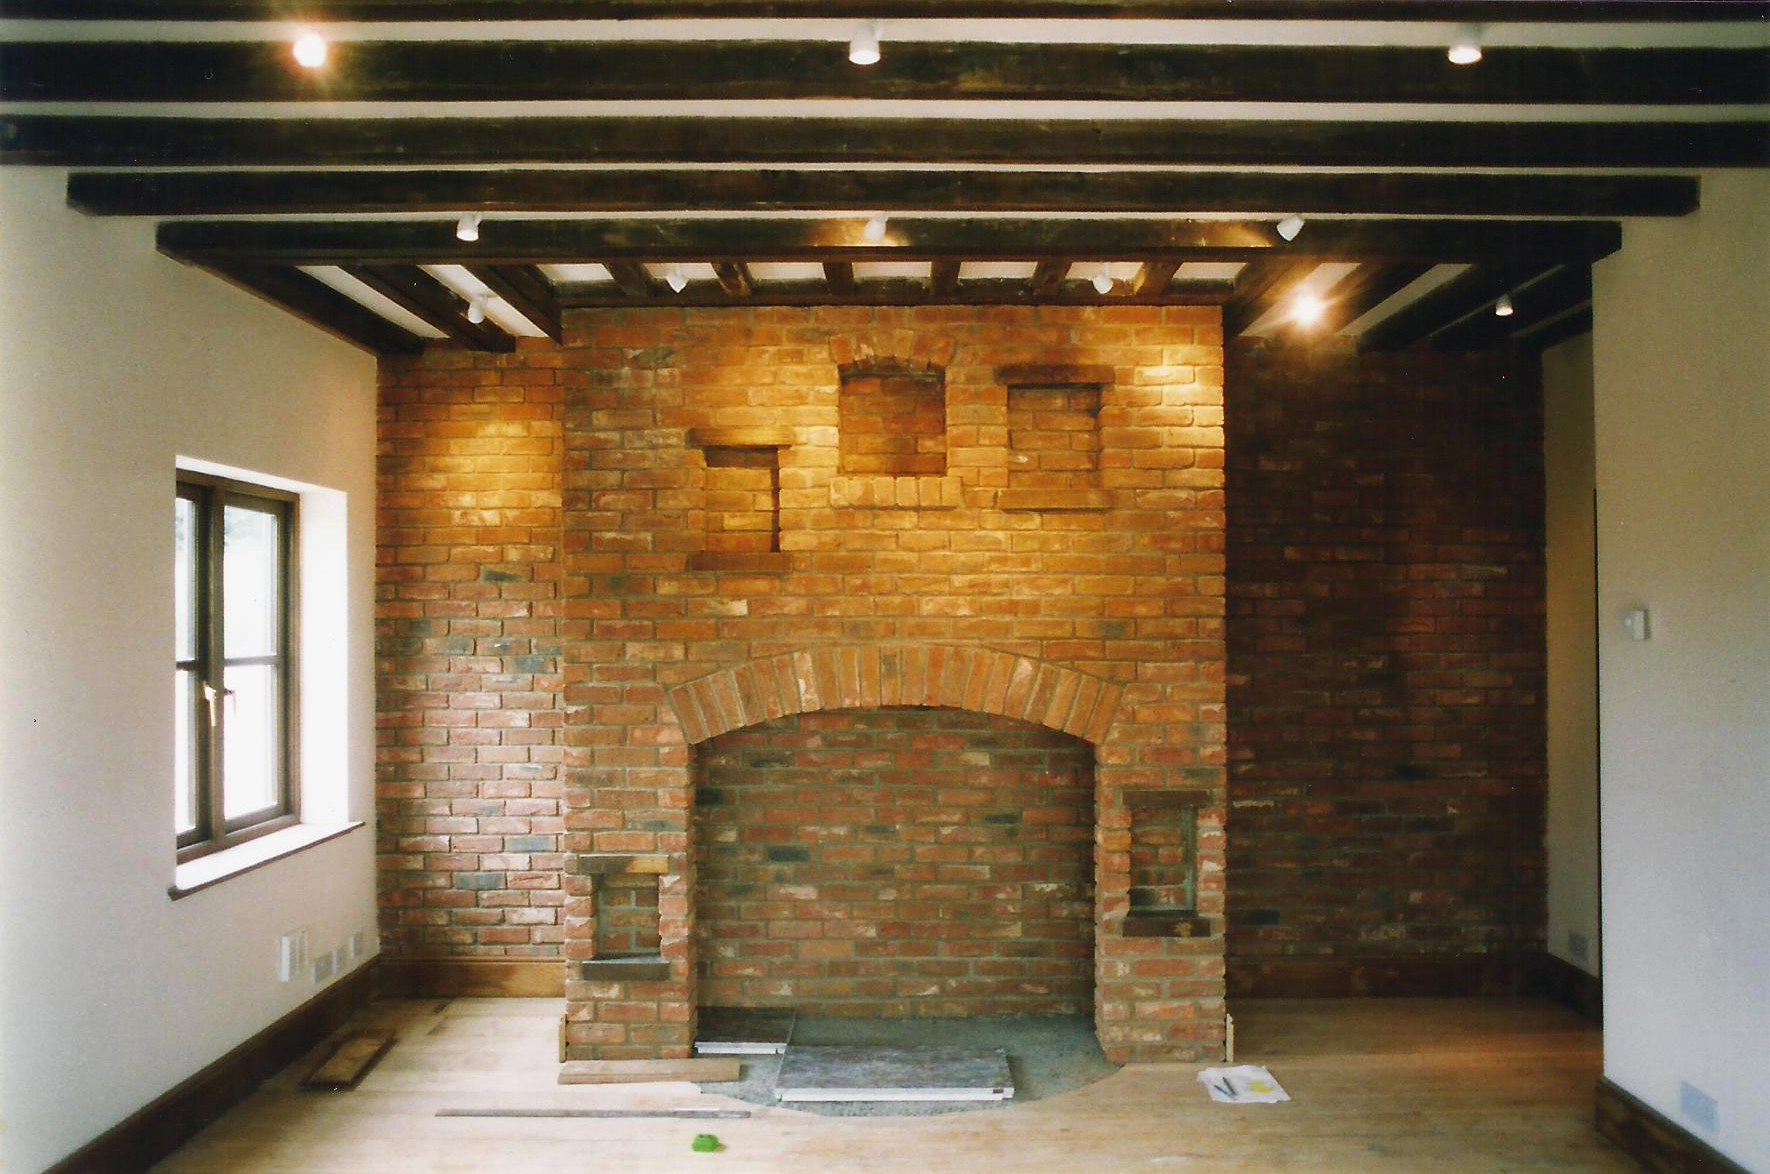 Fireplace Image 1 - North End Farm - East Yorkshire Architects - Samuel Kendall Associates